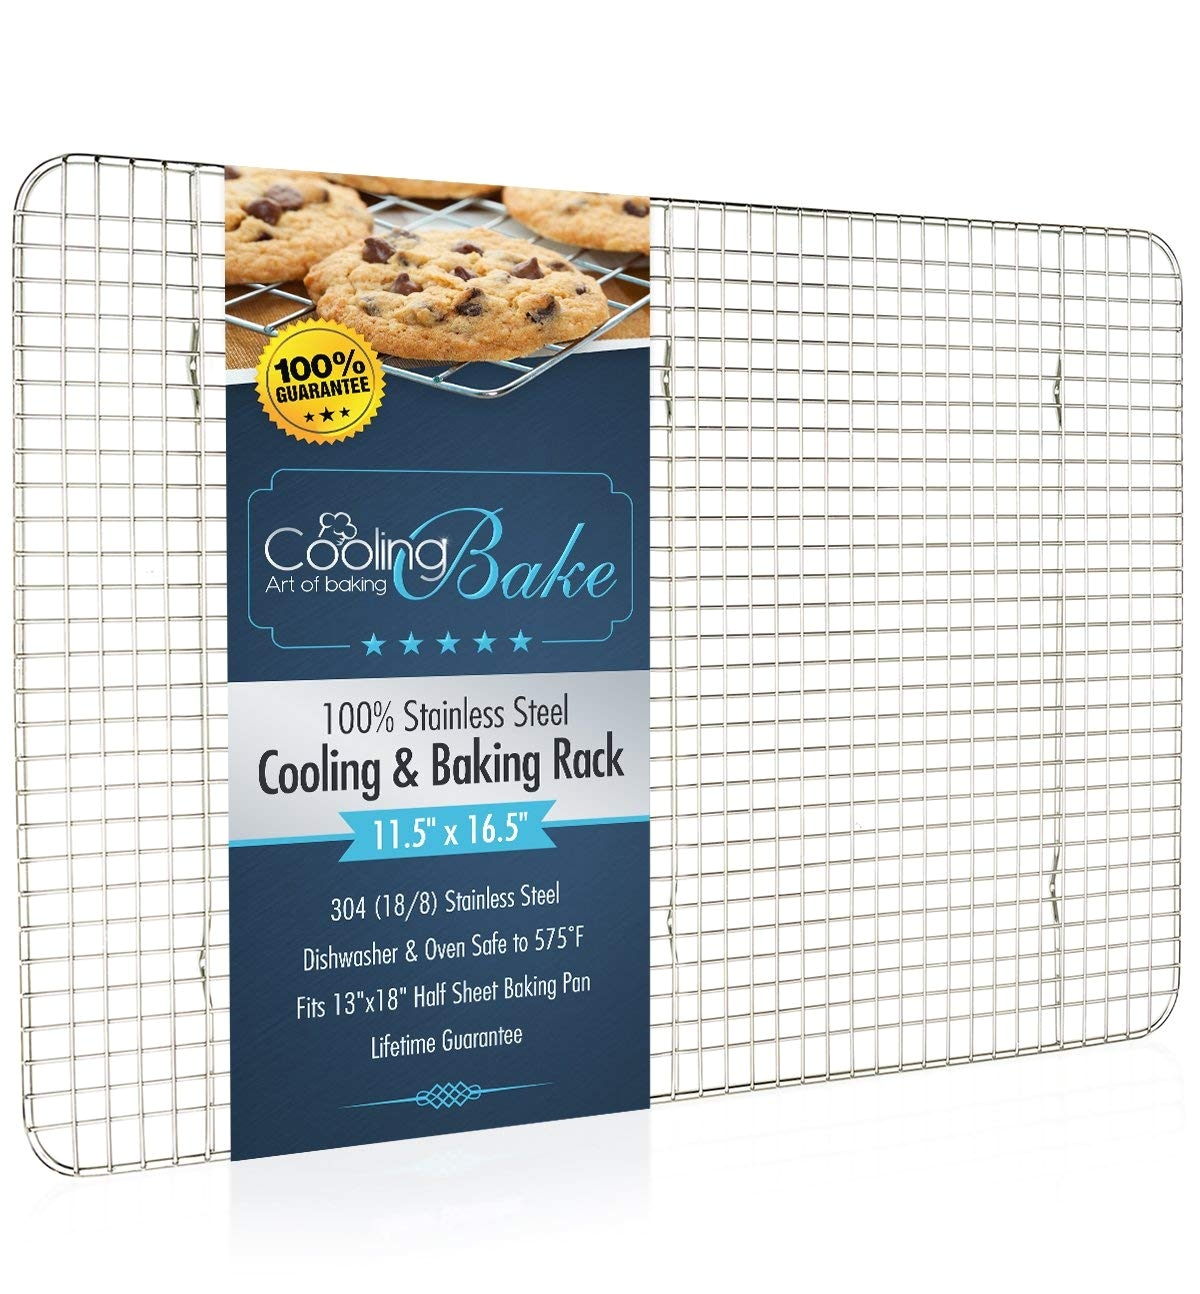 amazon com coolingbake stainless steel wire cooling and baking rack oven safe rust resistant heavy duty 11 5 x 16 5 kitchen dining